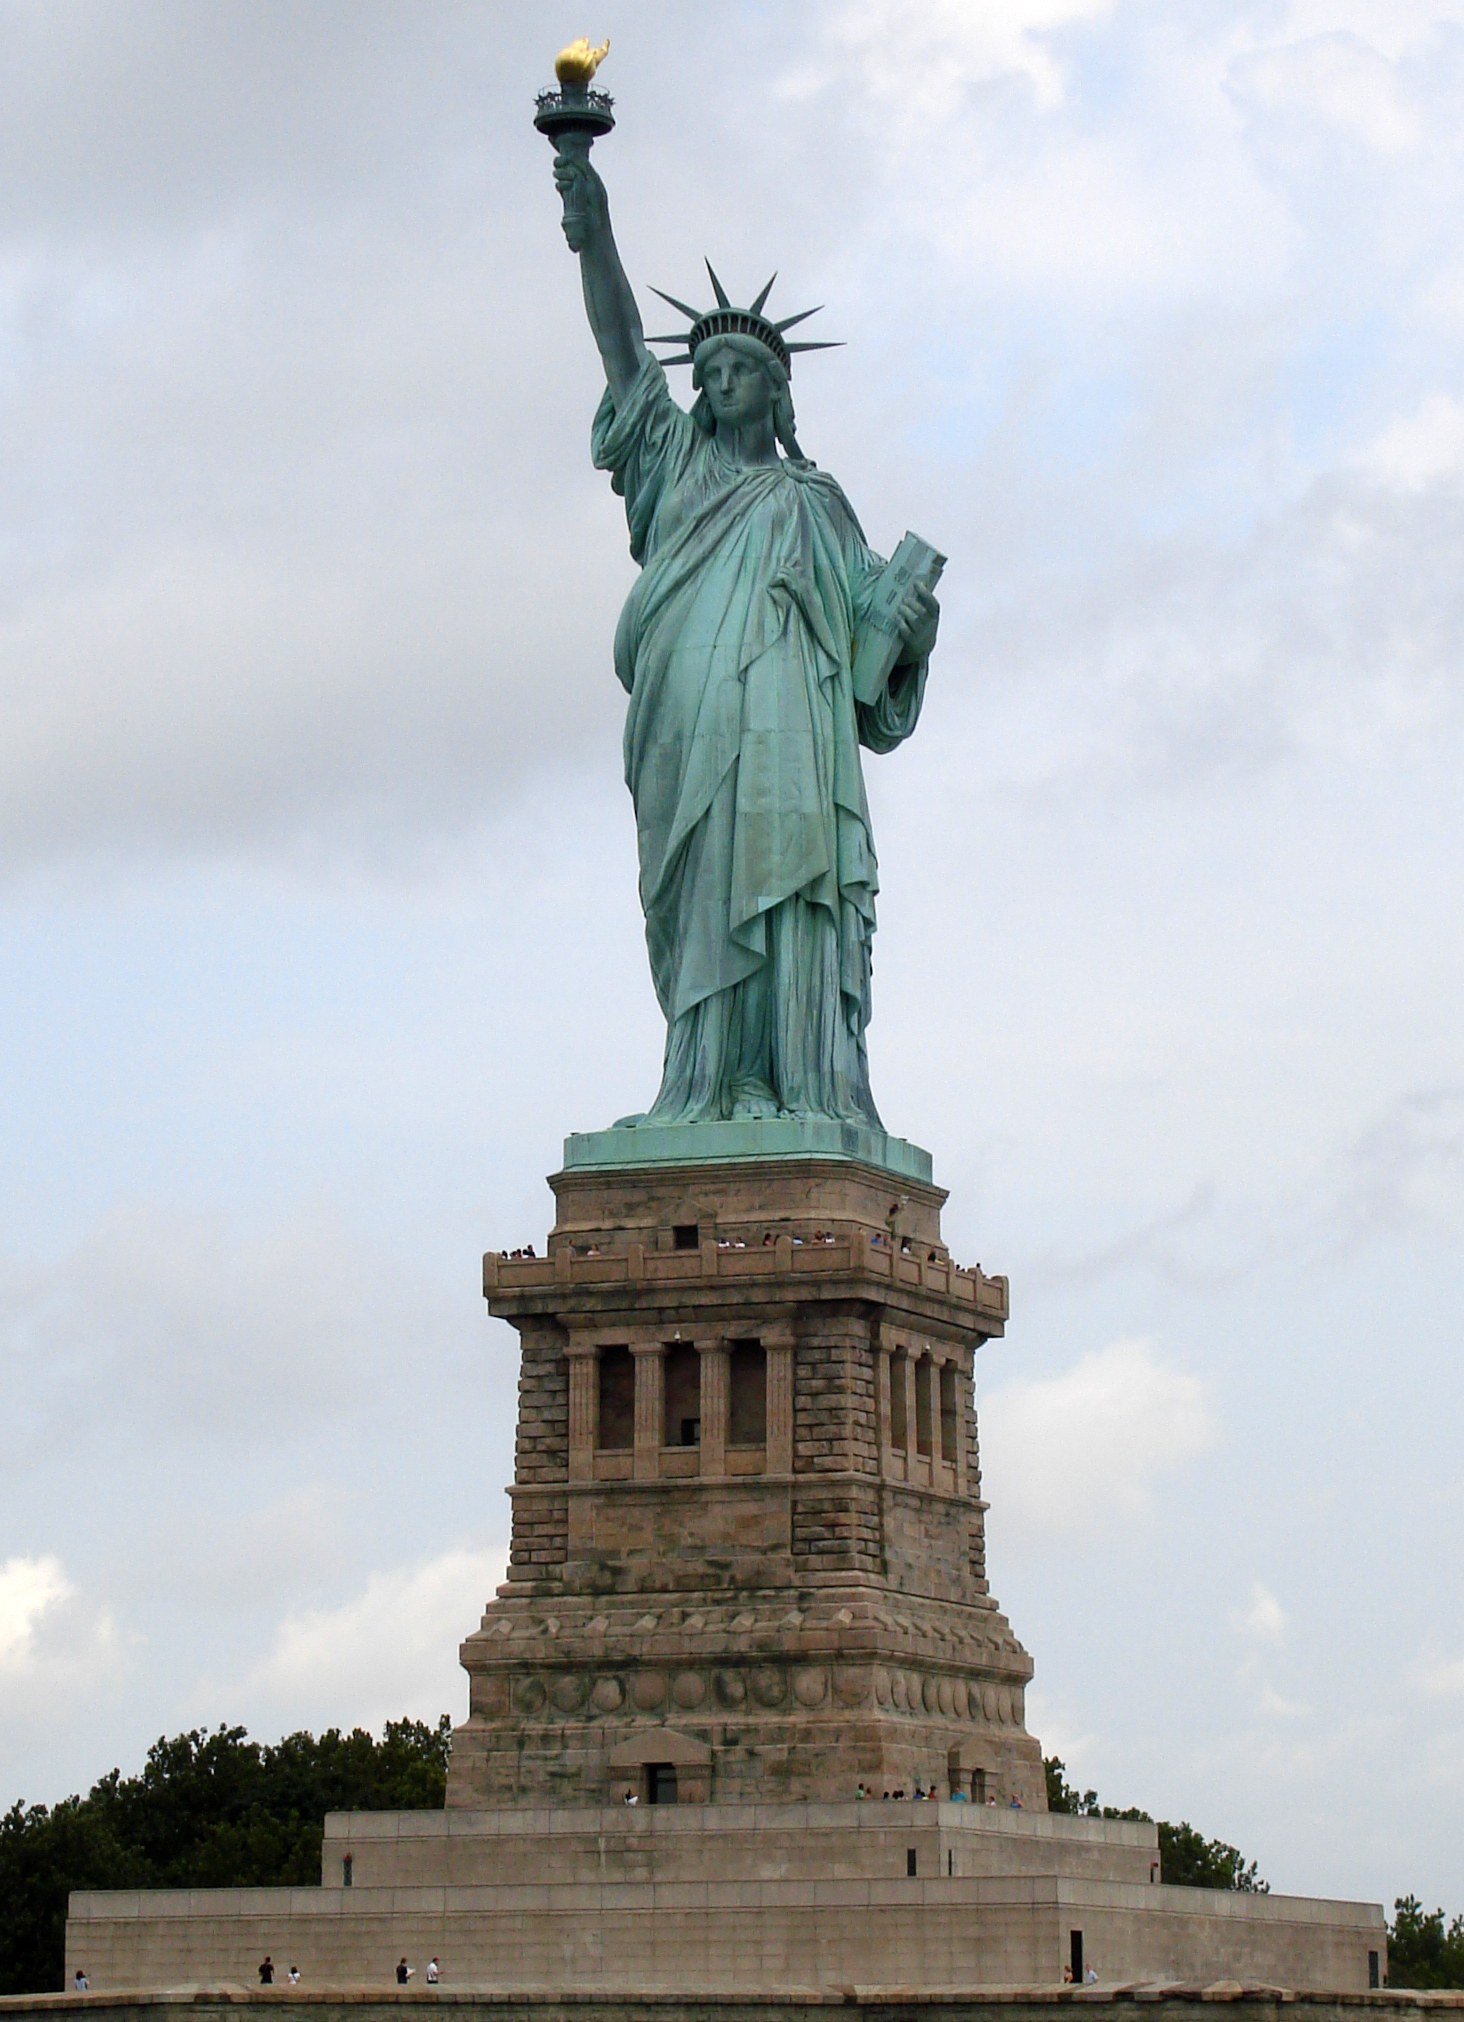 The Statue of Liberty in New York, United States of America